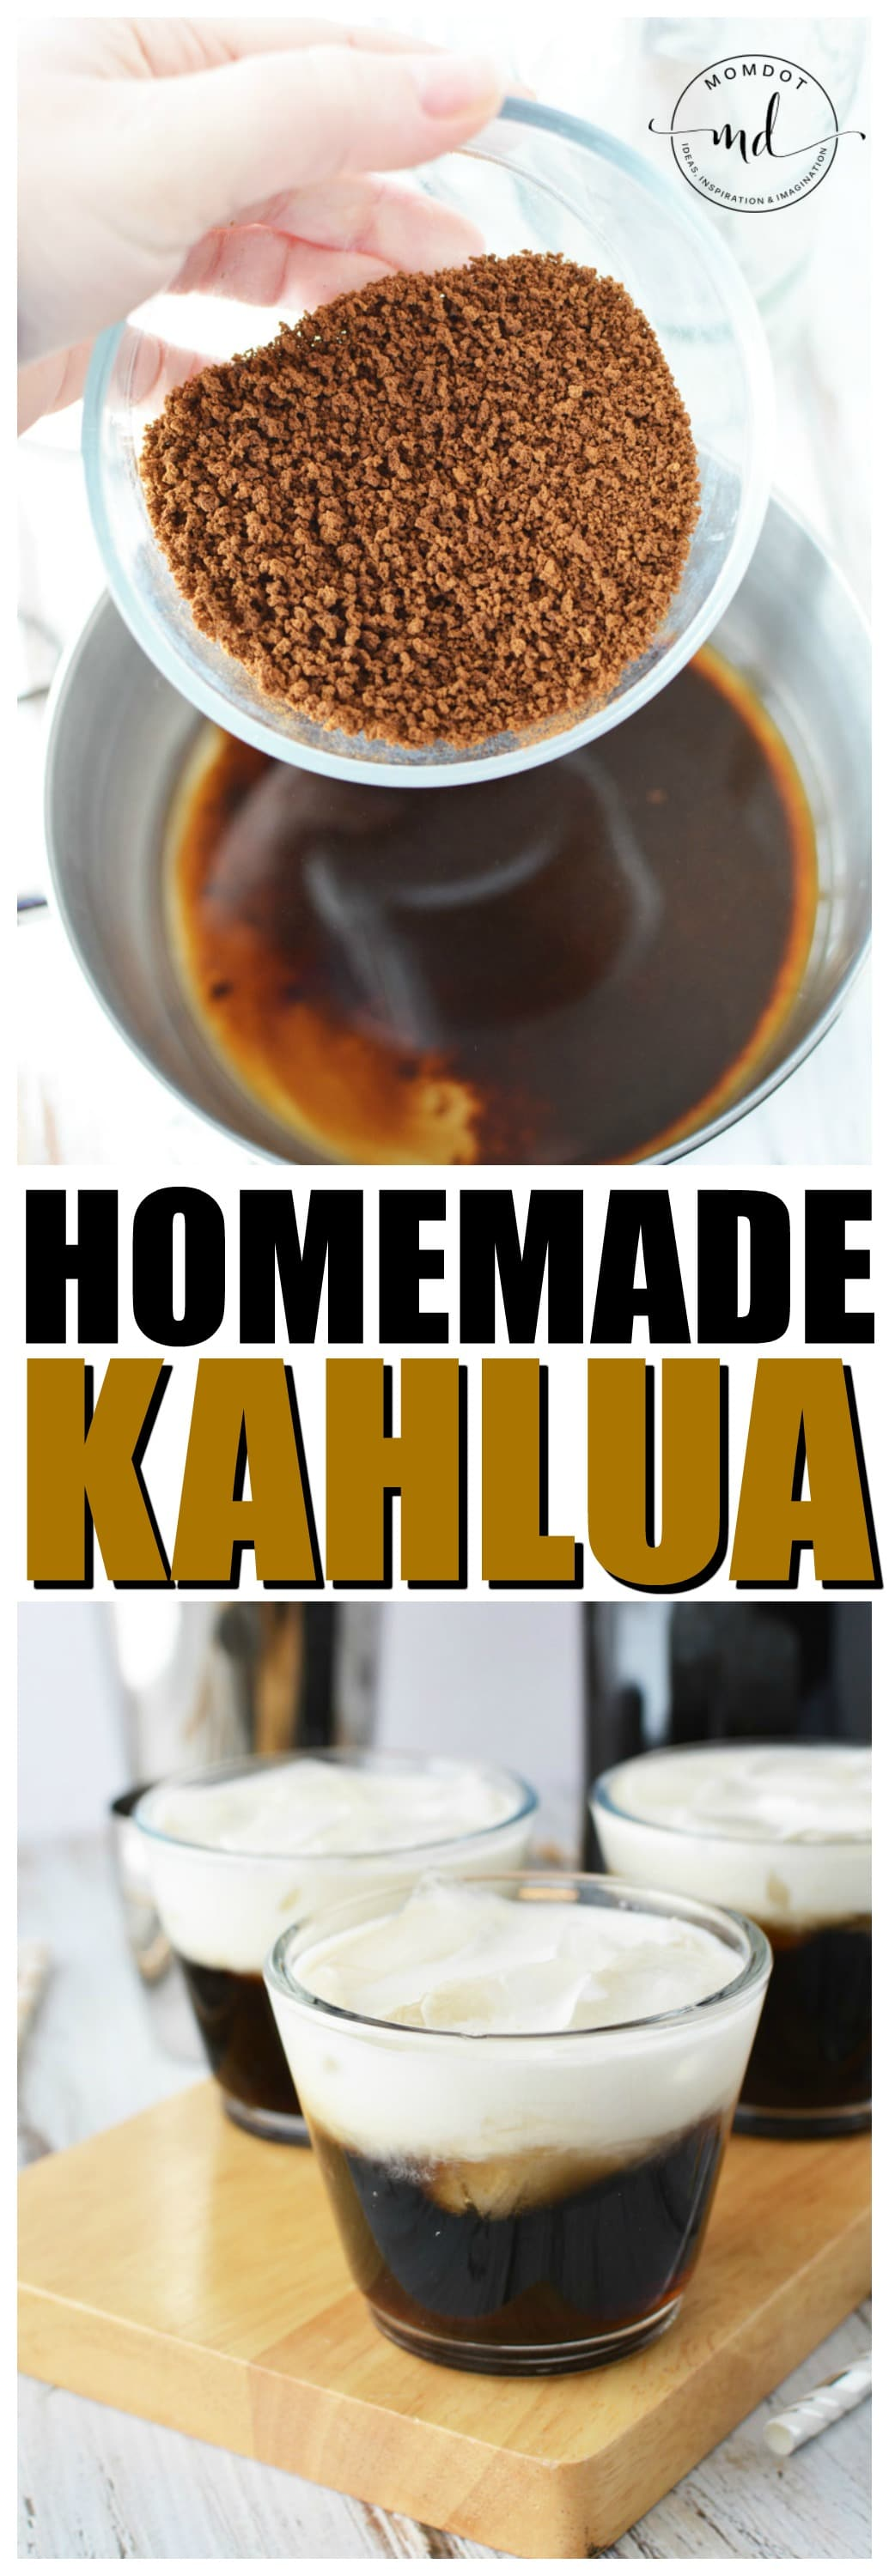 kahlua recipe